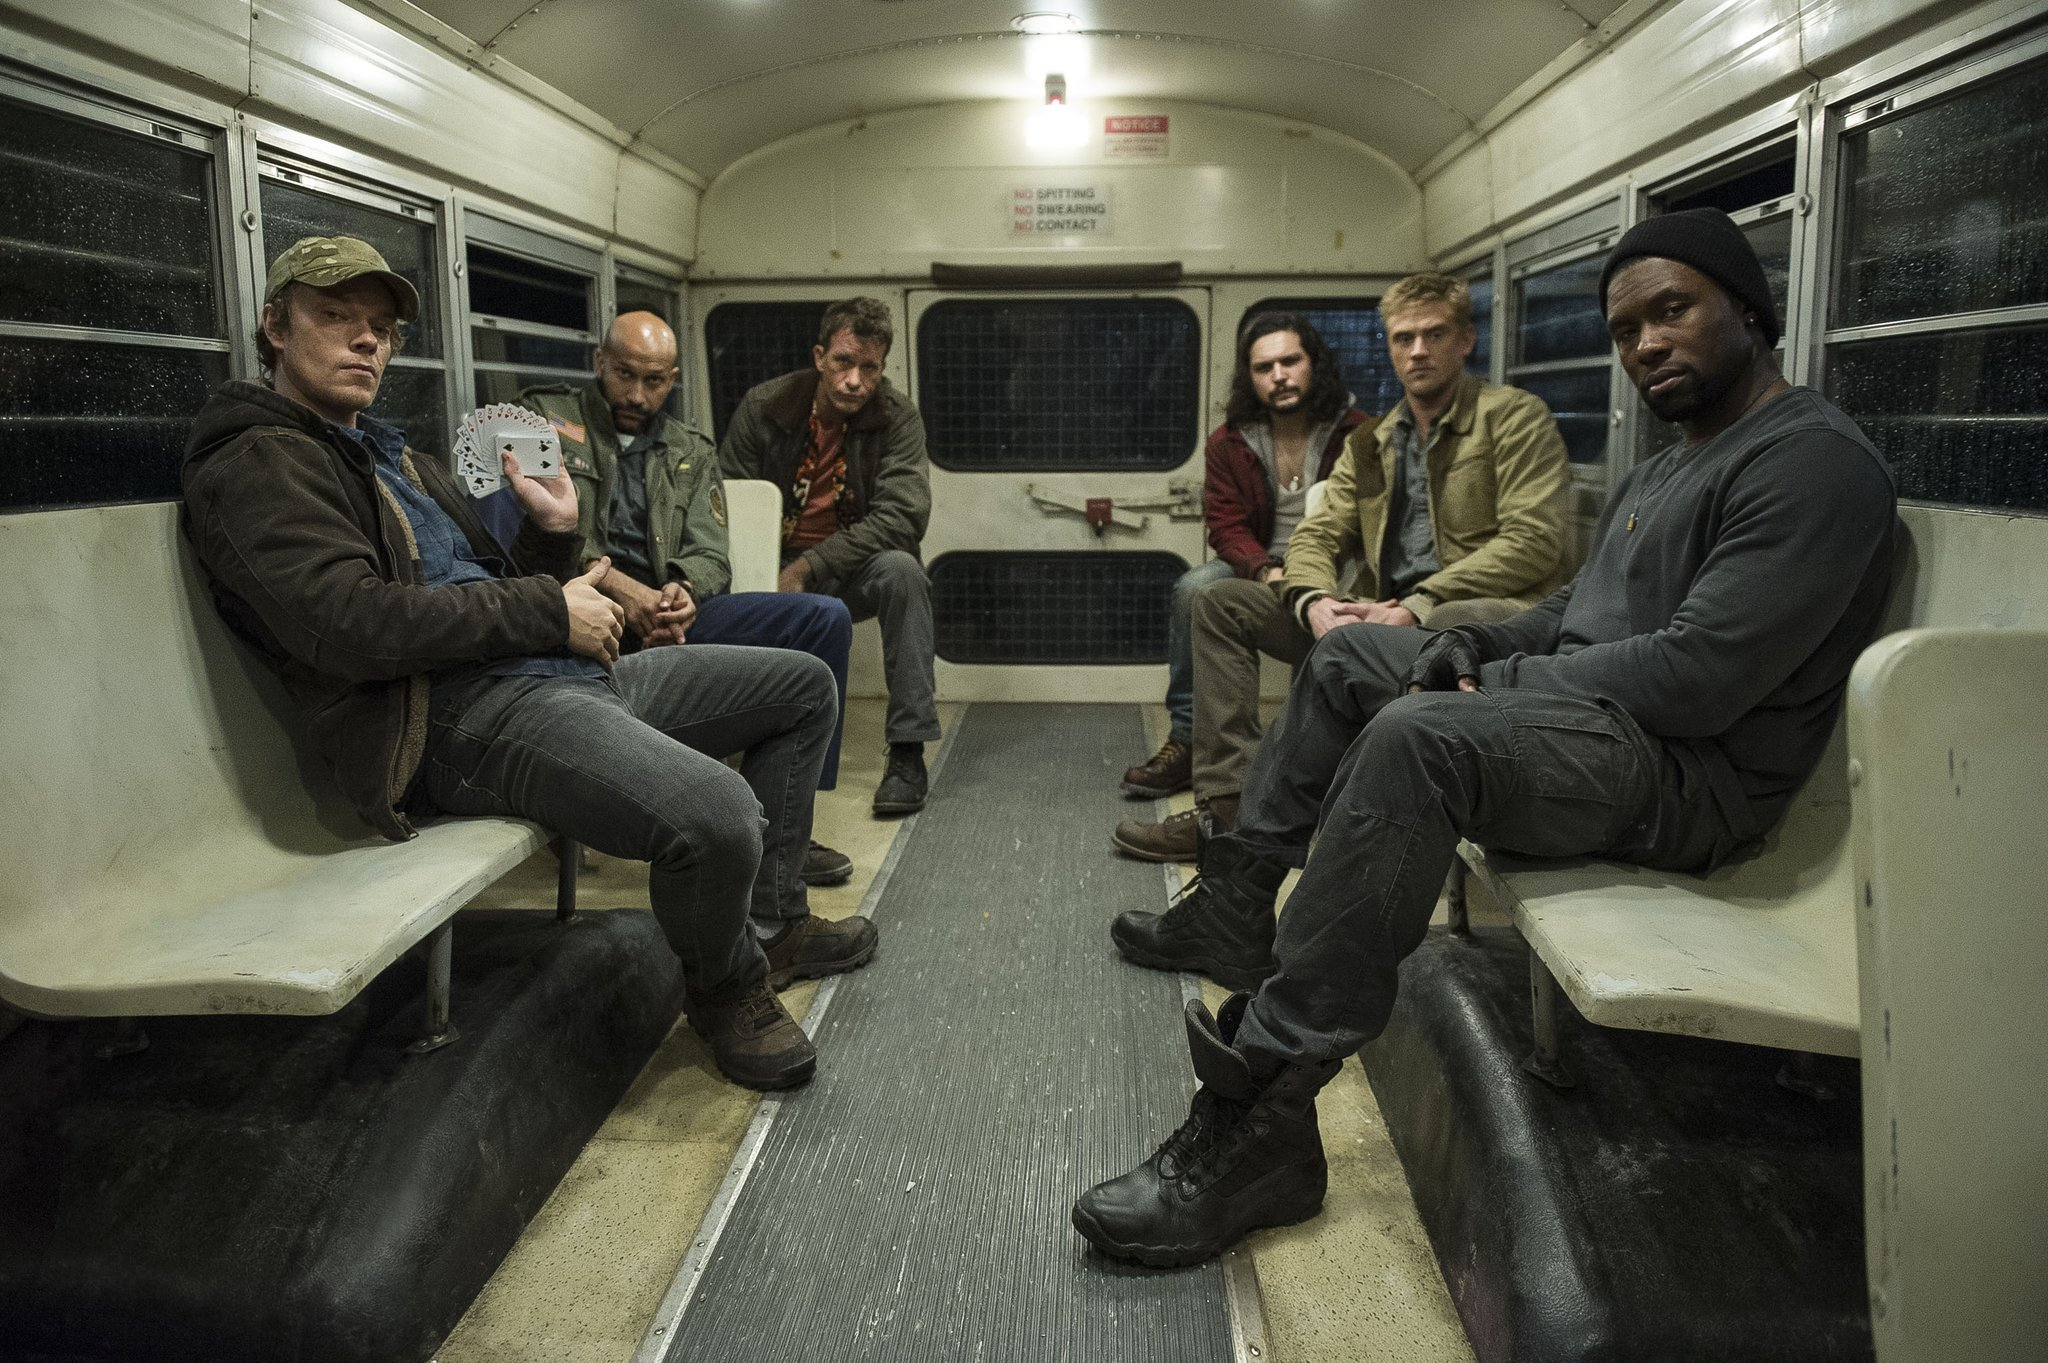 The Predator Cast Photo #2